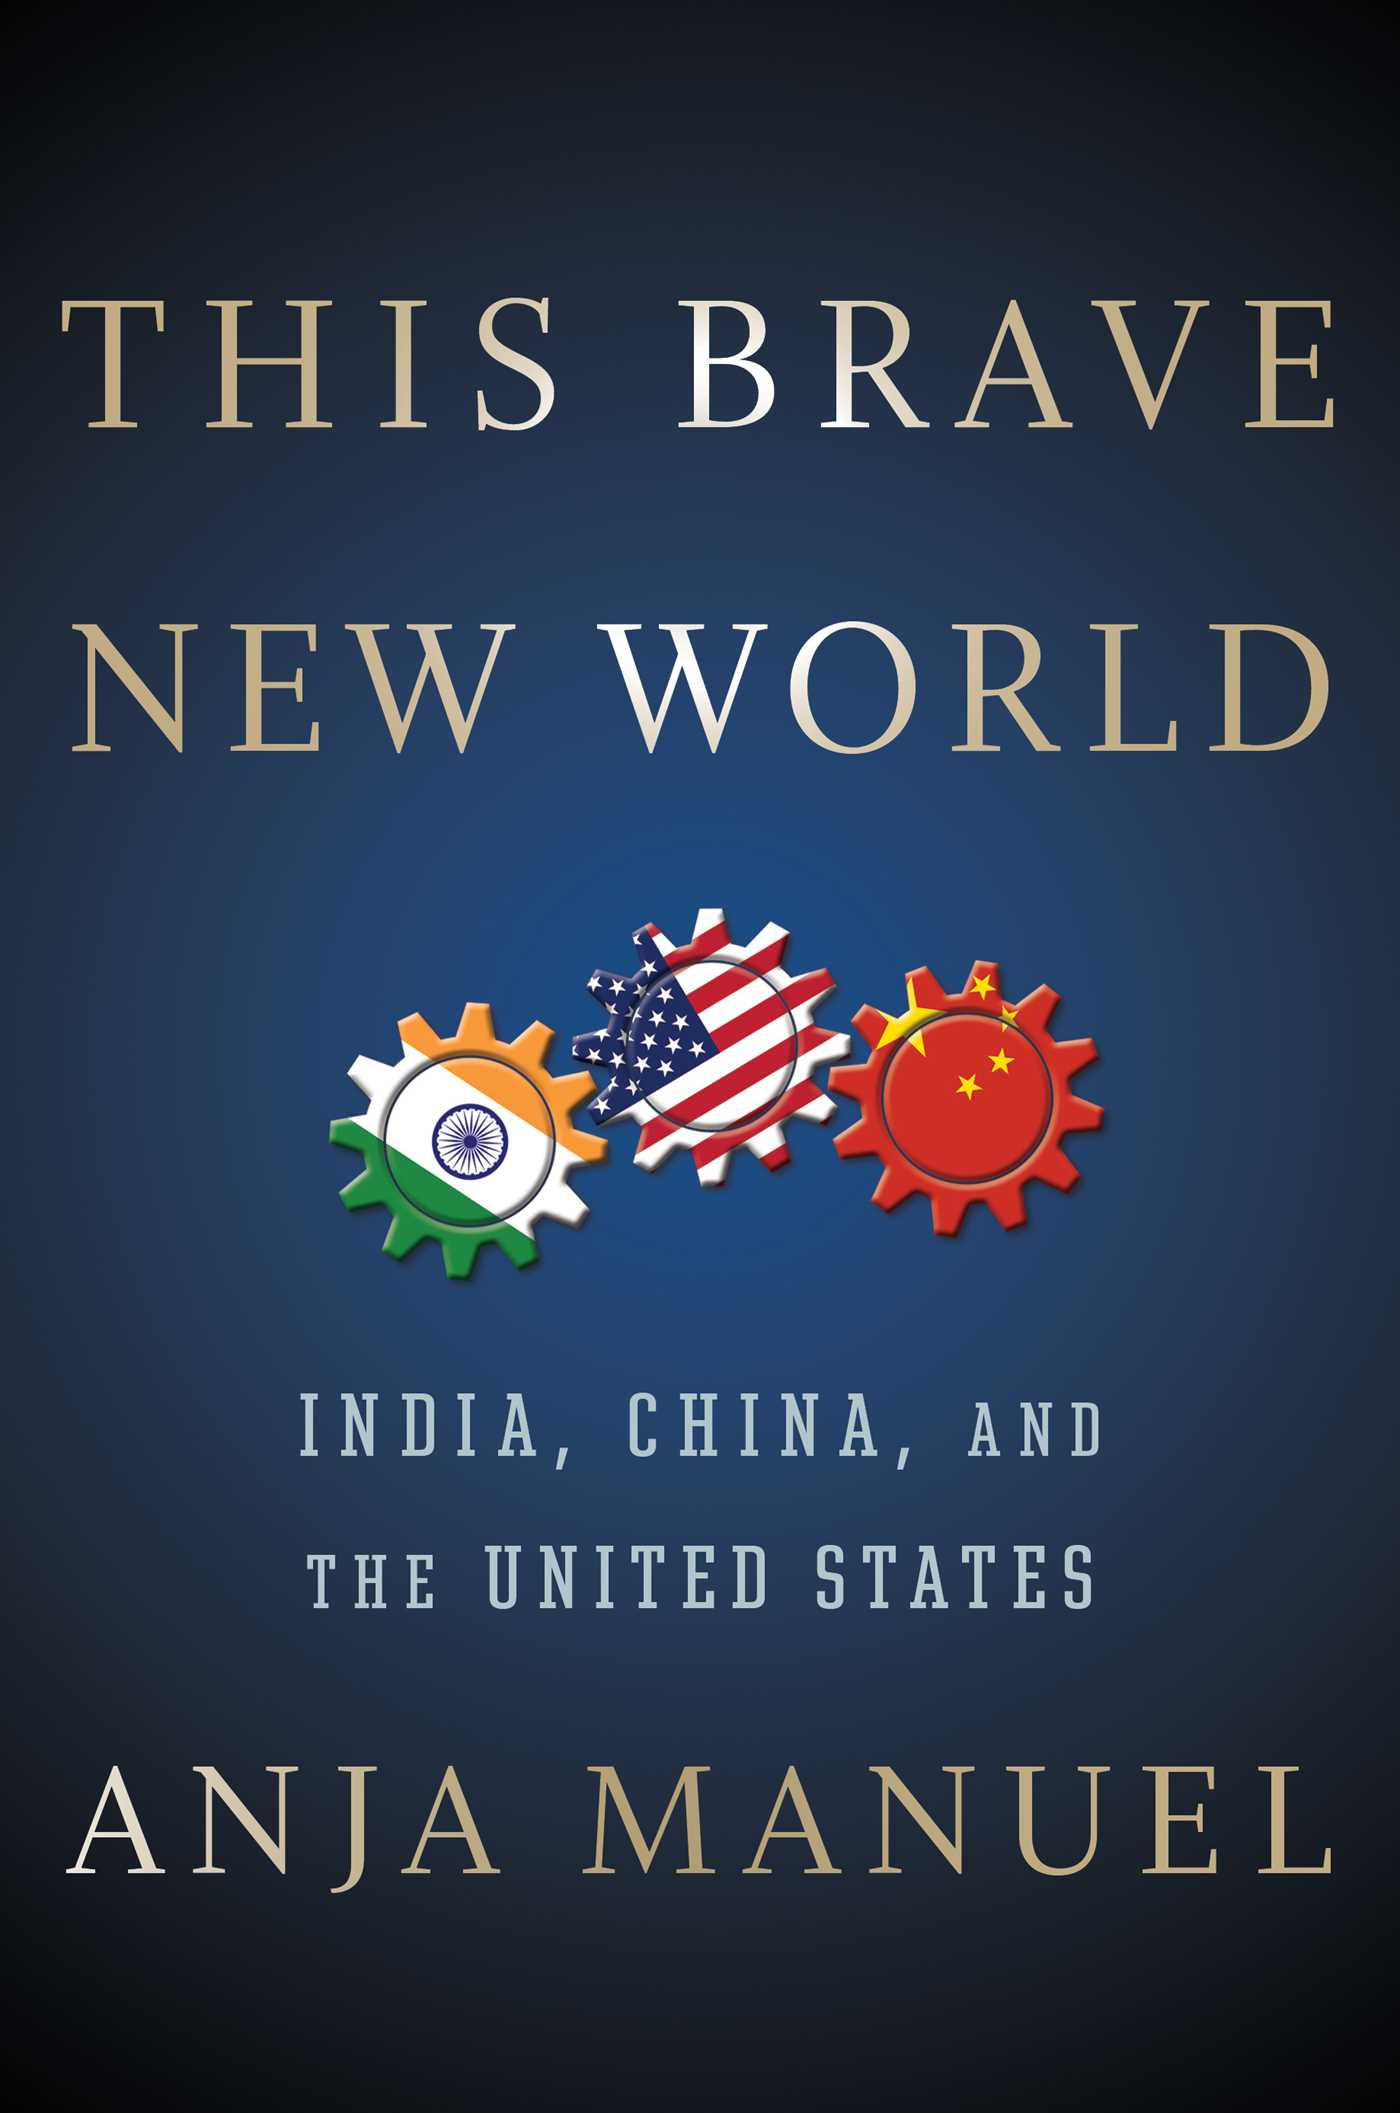 This brave new world 9781501121975 hr